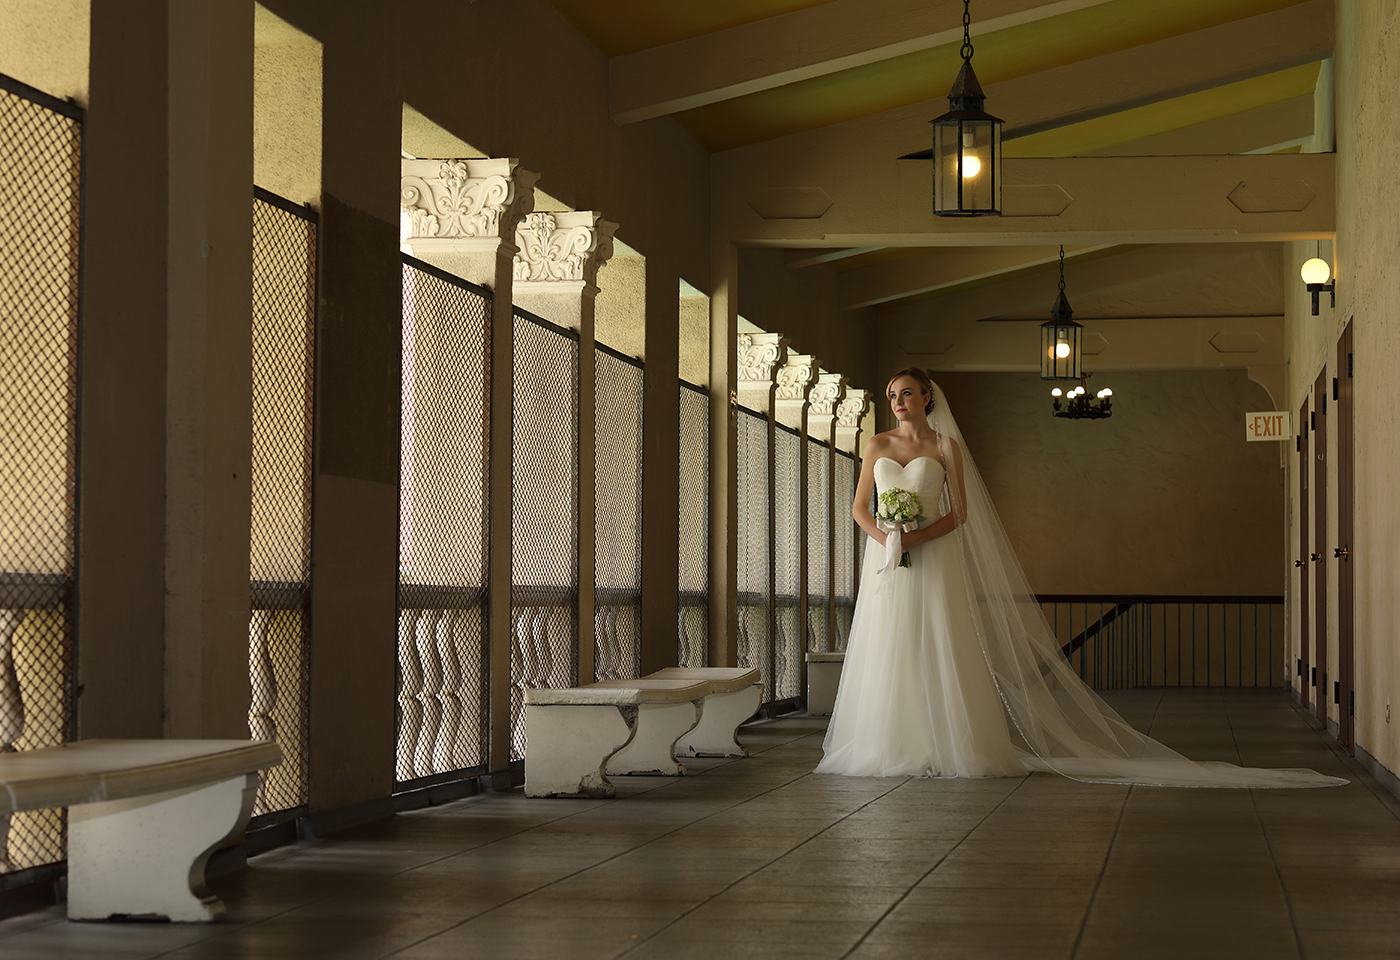 wide shot image of bride with bouquet standing in hallway